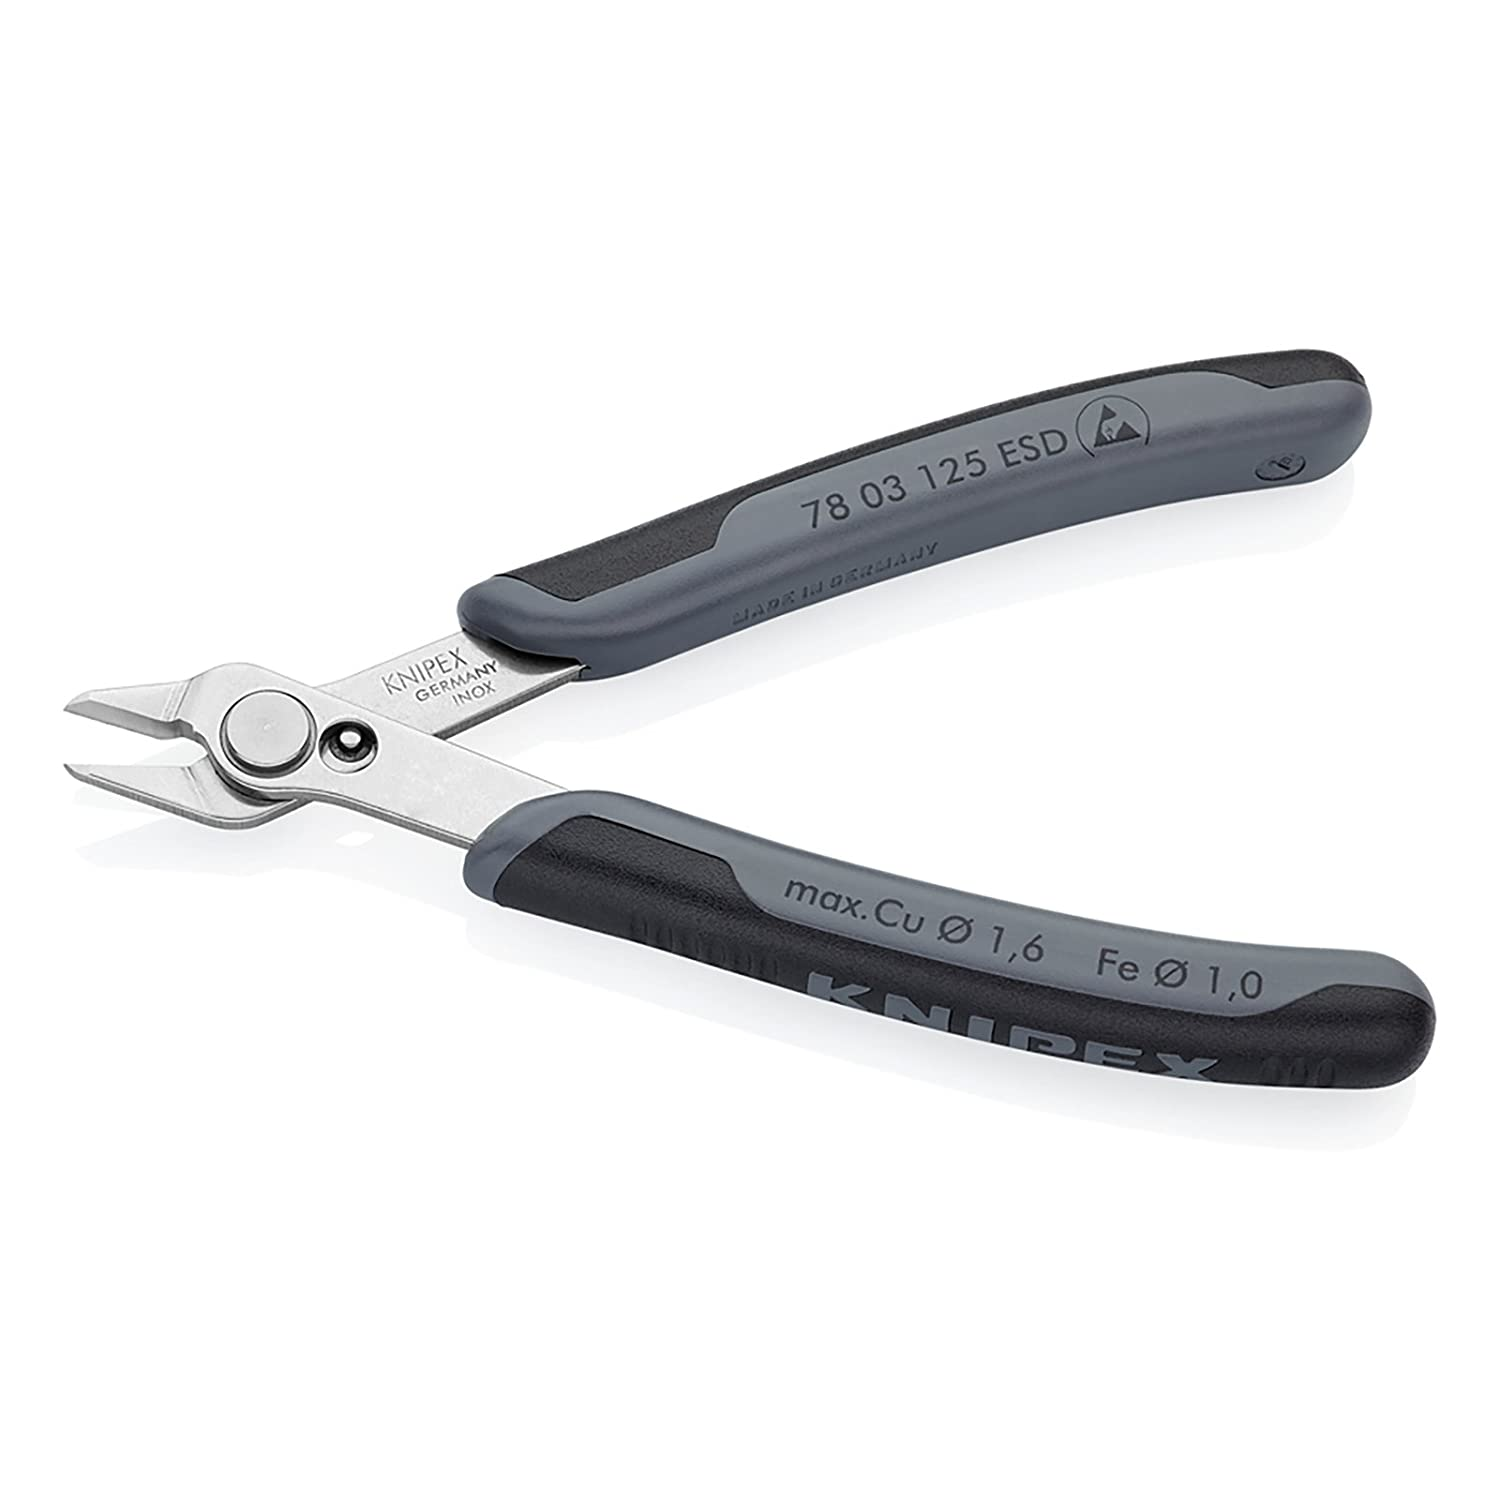 Knipex 78 03 125 ESD Pr/äzisionszange Electronic Super Knips